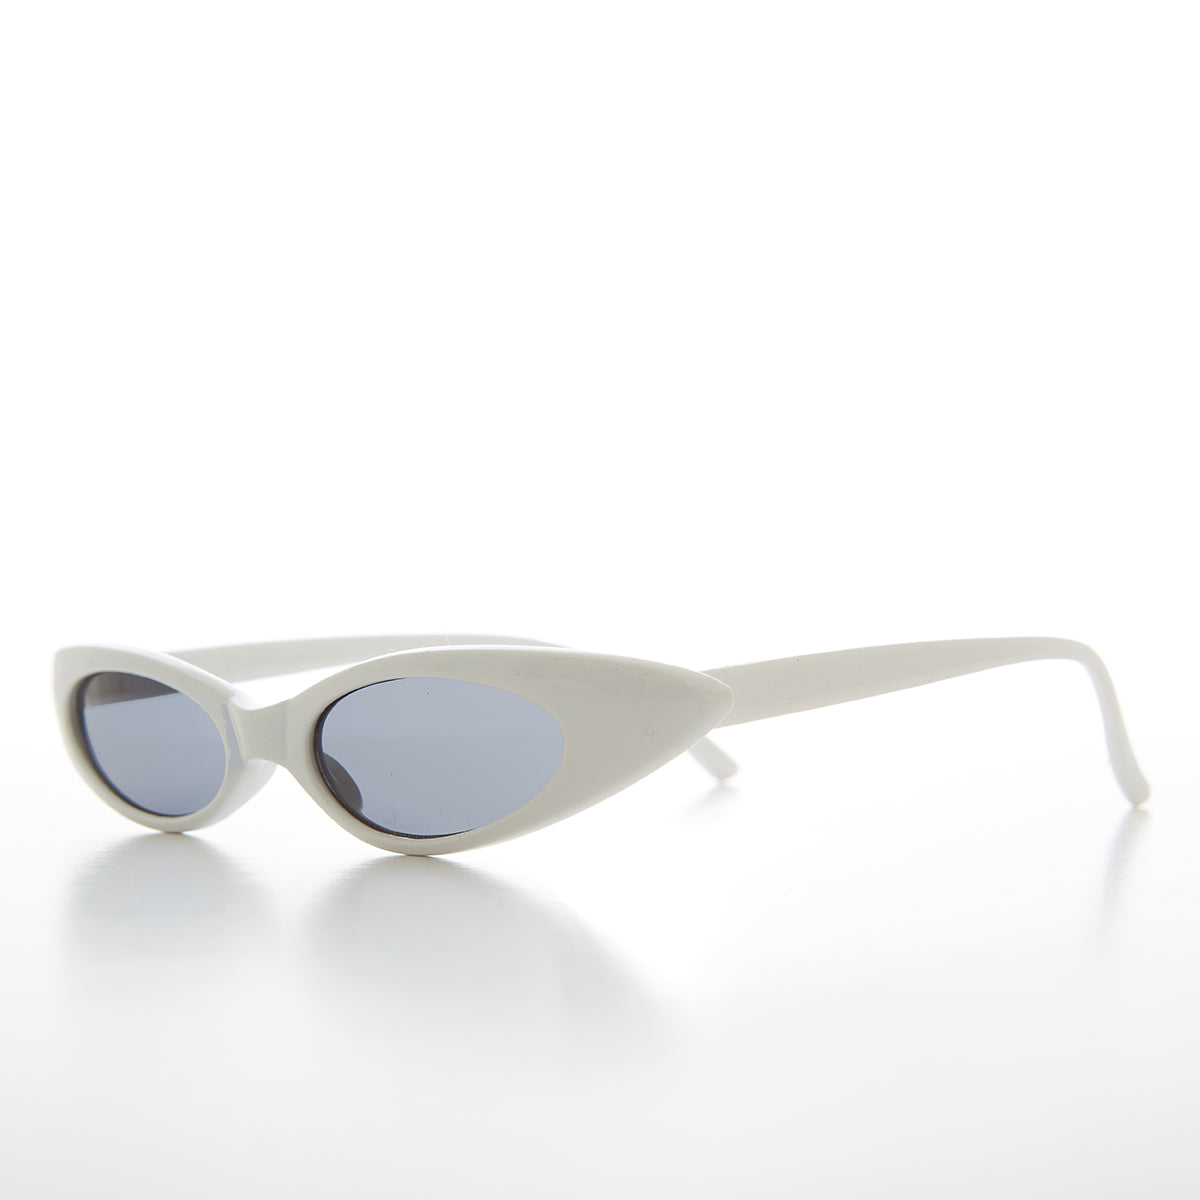 White Skinny Narrow Punk Rock Cat Eye Sunglass